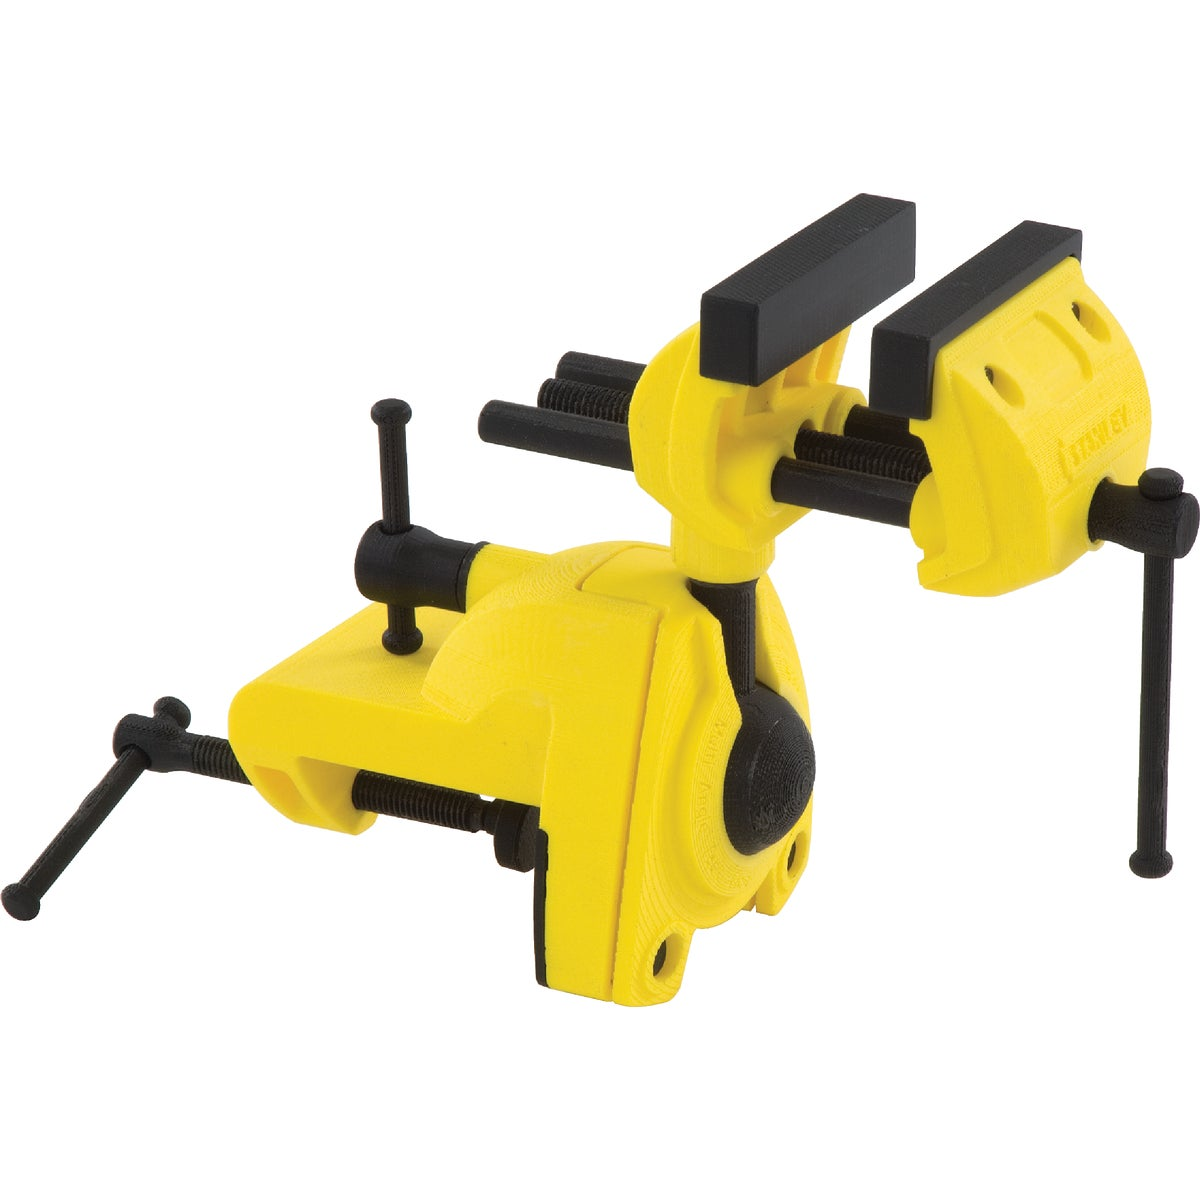 MAX STL MULTI-ANGLE VISE - 83-069M by Stanley Tools